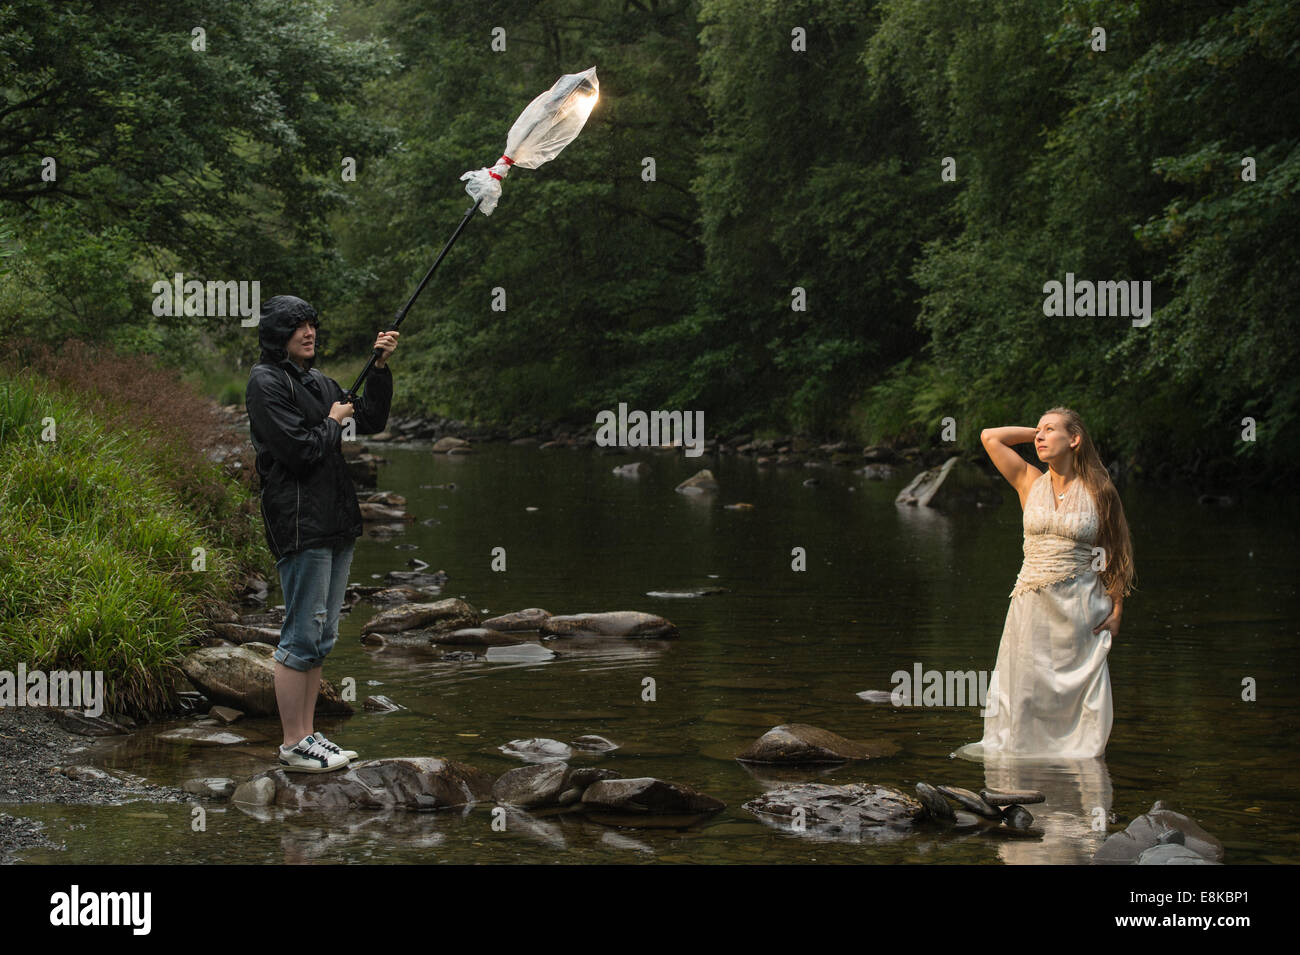 Trash the dress photo shoot : a 'bride' wearing her wedding dress standing in river - photographers assistant - Stock Image